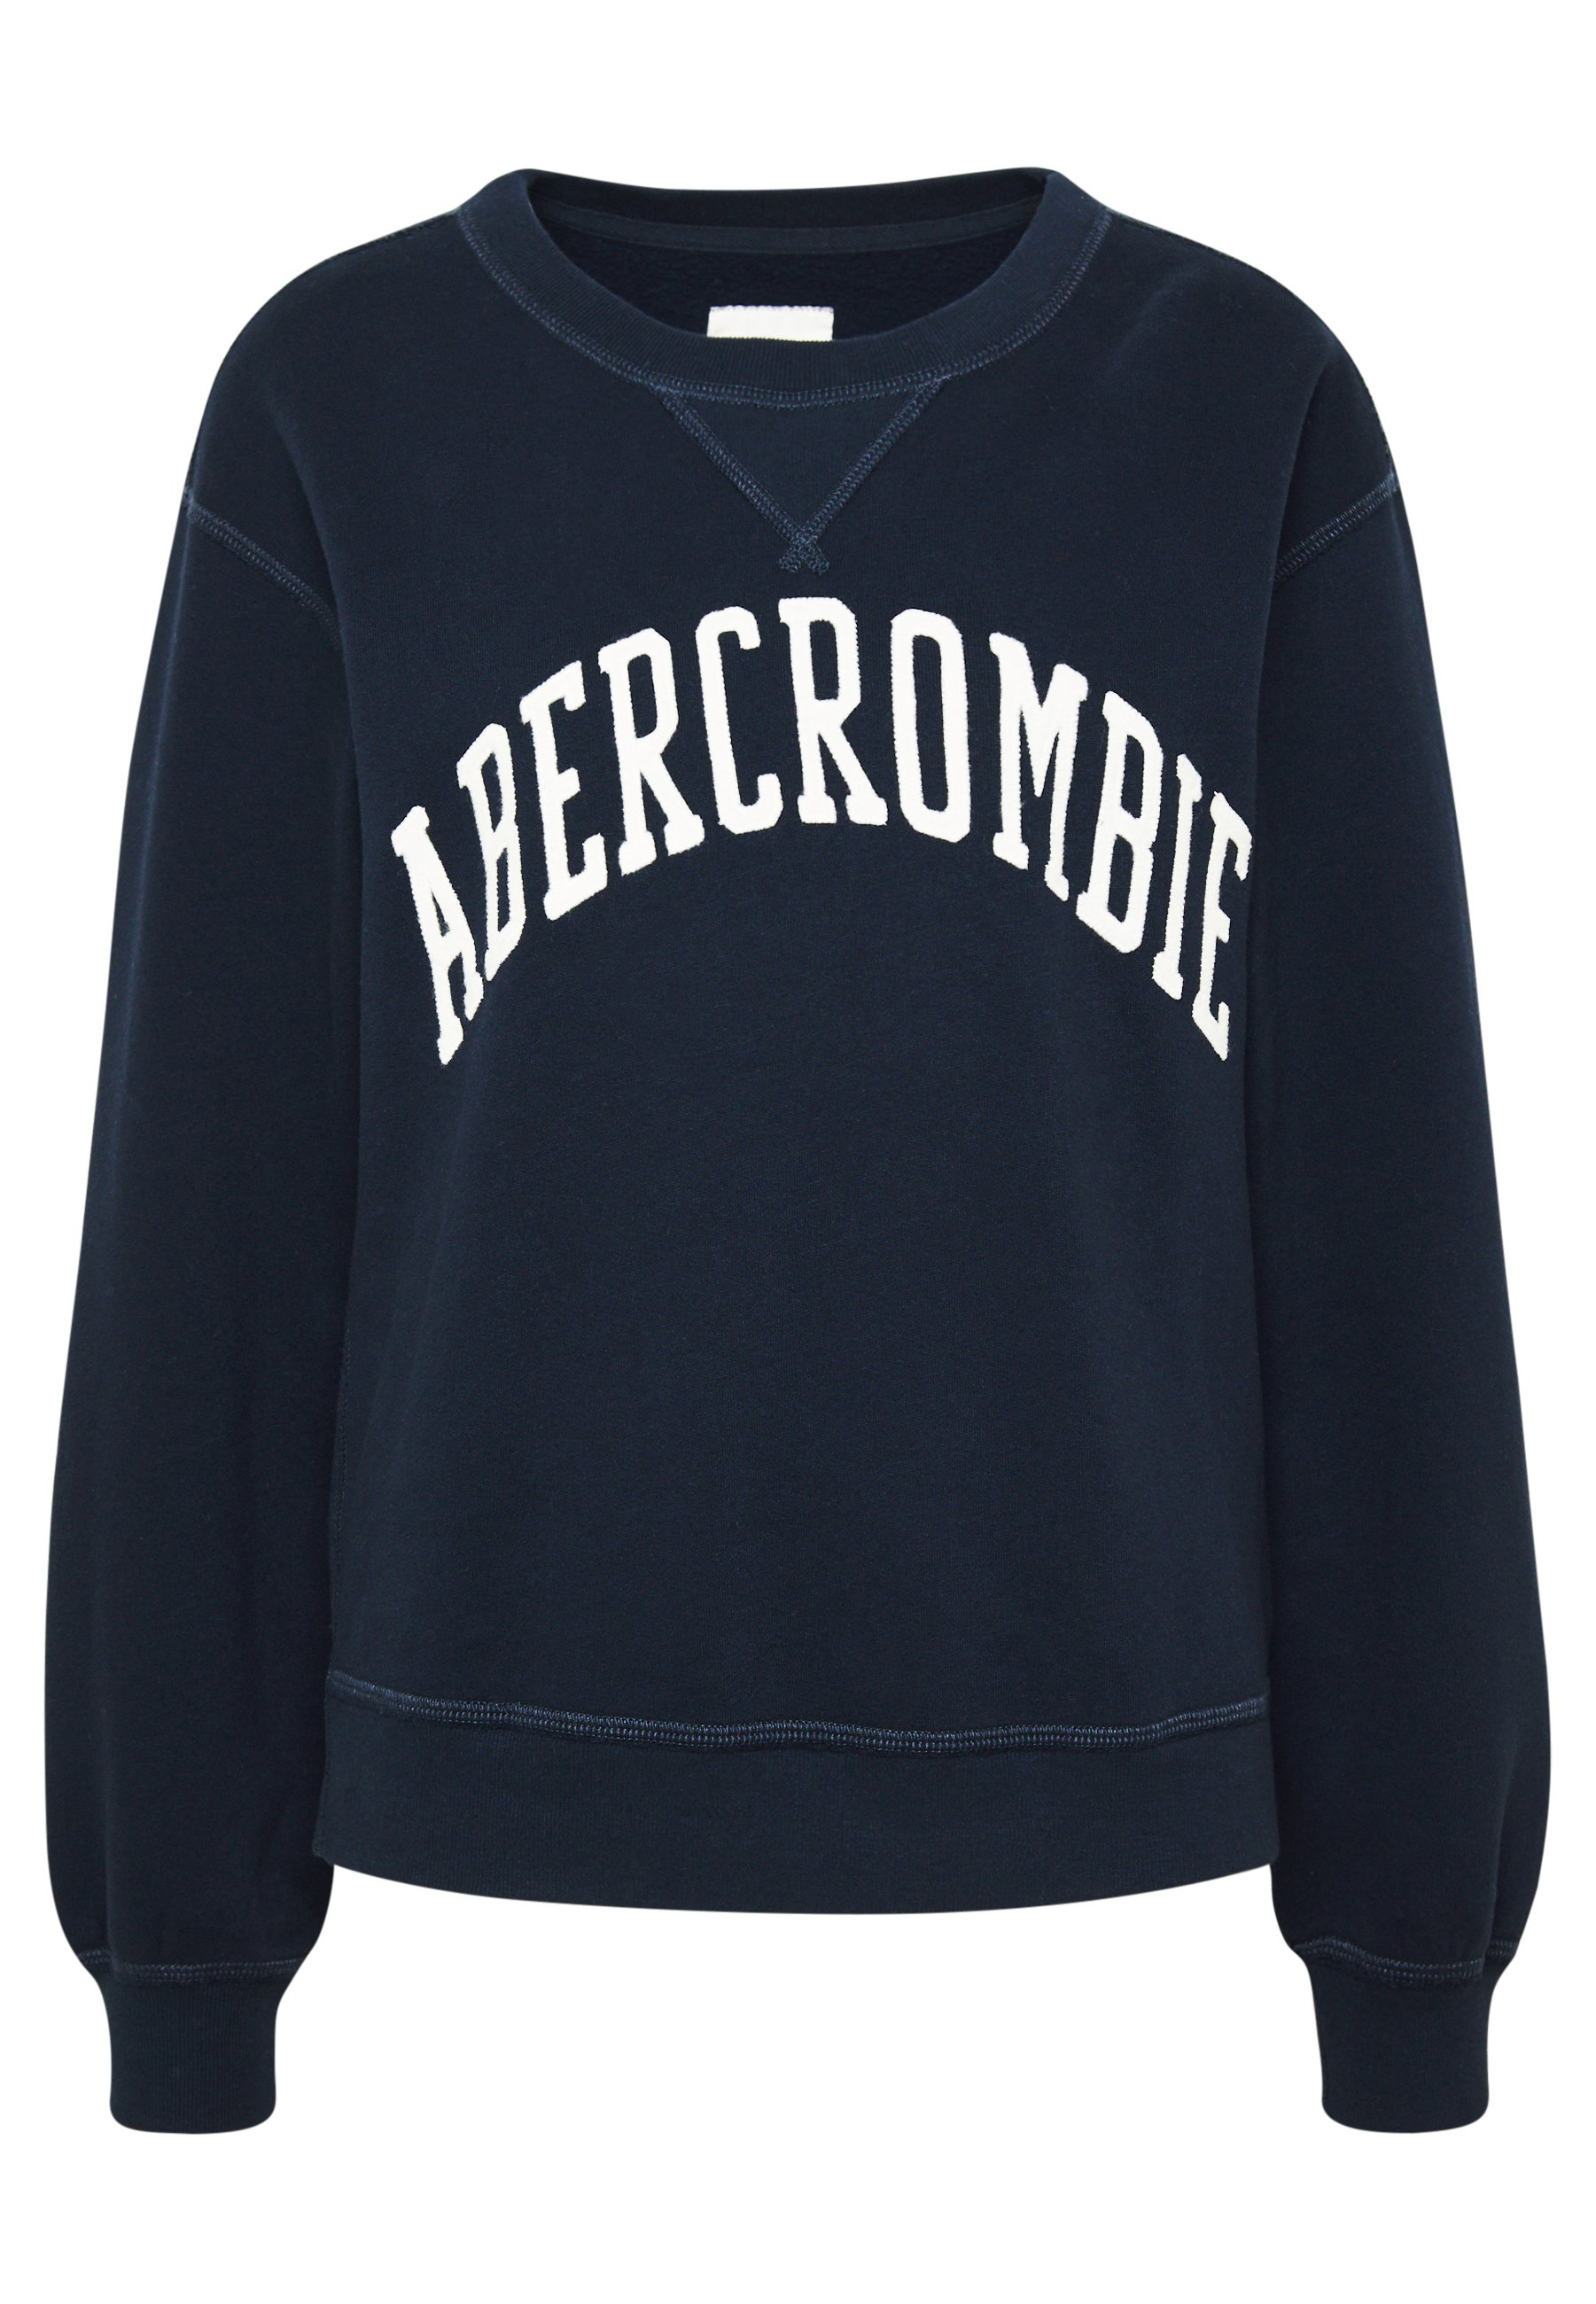 Abercrombie & Fitch Heritage Relaxed Crew - Sweatshirts Navy